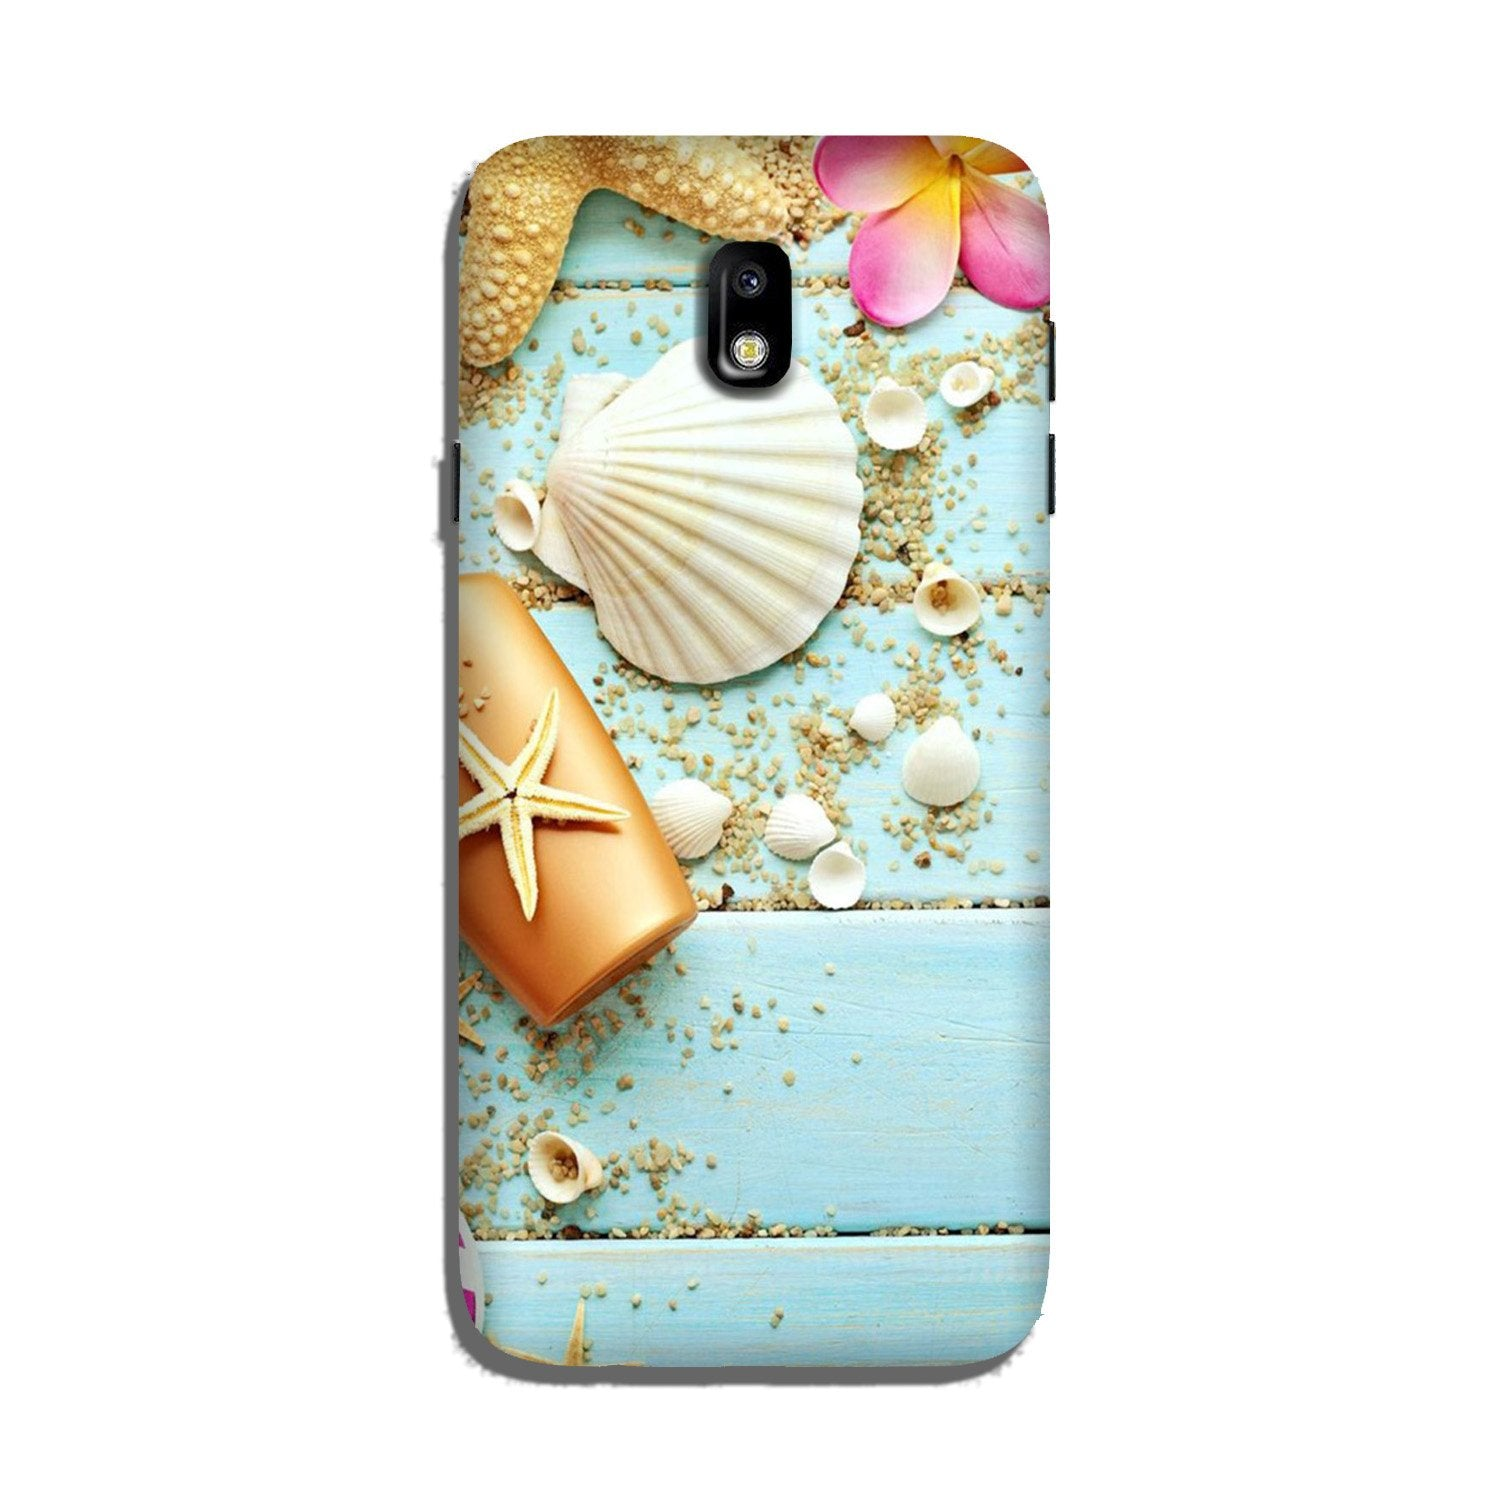 Sea Shells Case for Galaxy J3 Pro